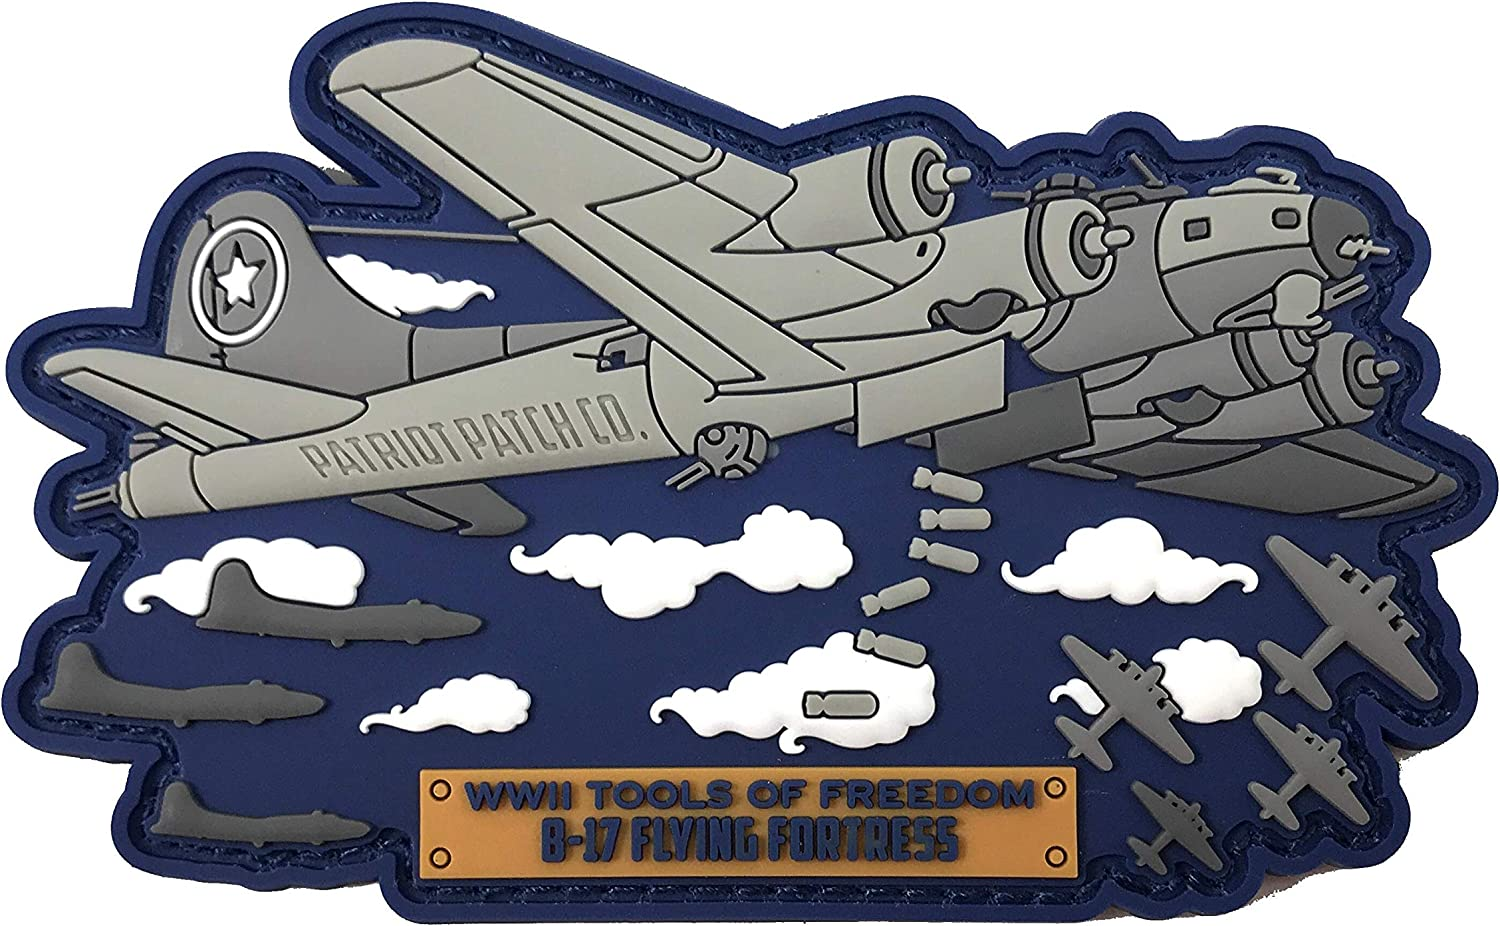 Patriot Patch Co Max 40% Free Shipping Cheap Bargain Gift OFF - Patches WWII Vehicle Historical